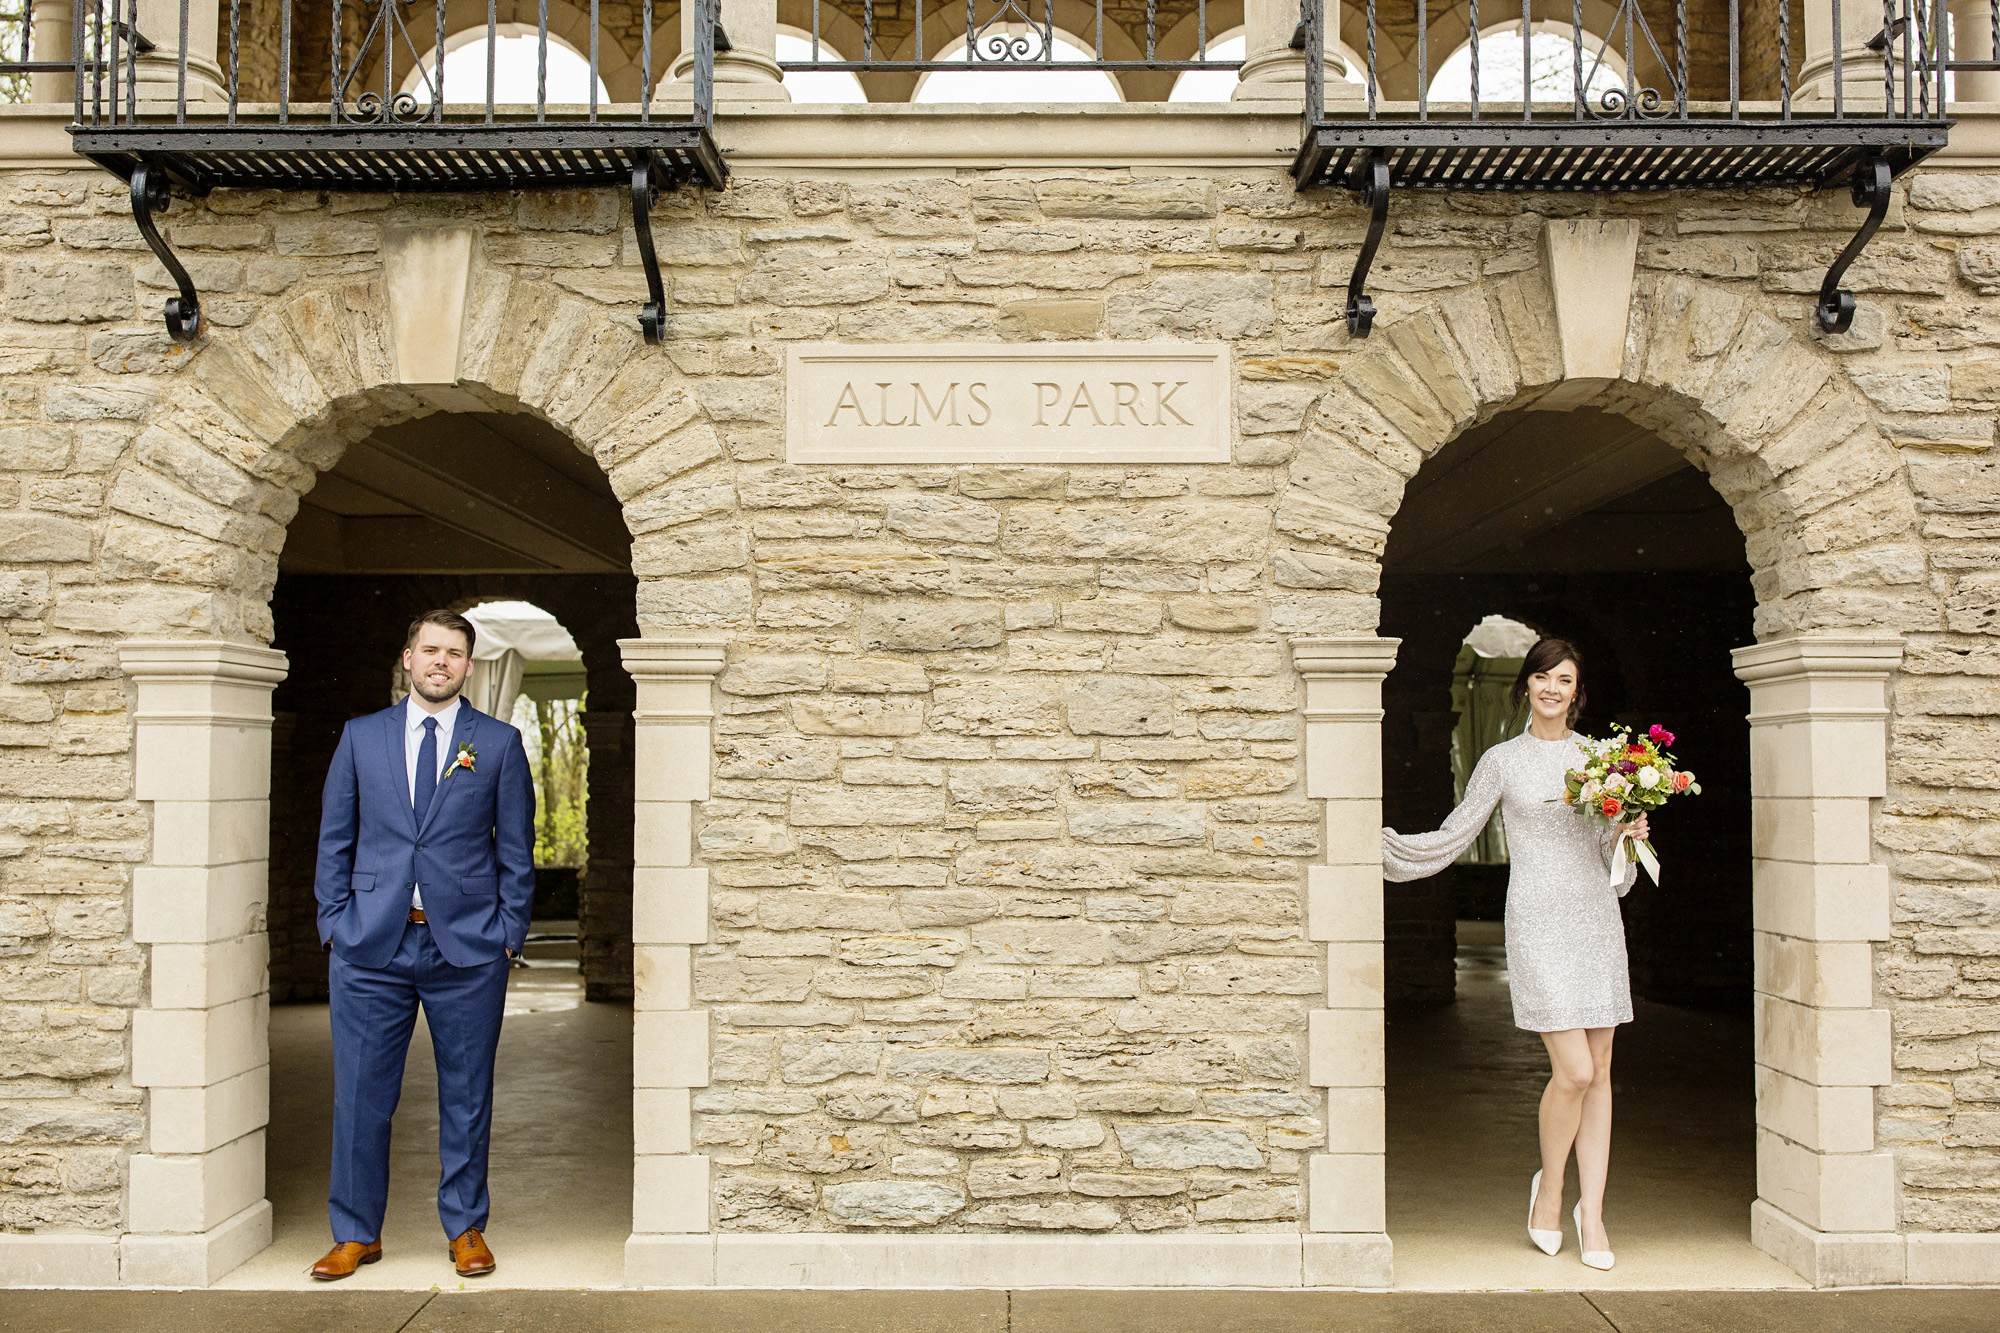 Seriously_Sabrina_Photography_Cincinnati_Ohio_Alms_Park_Elopement_Lauren_Aaron_35.jpg